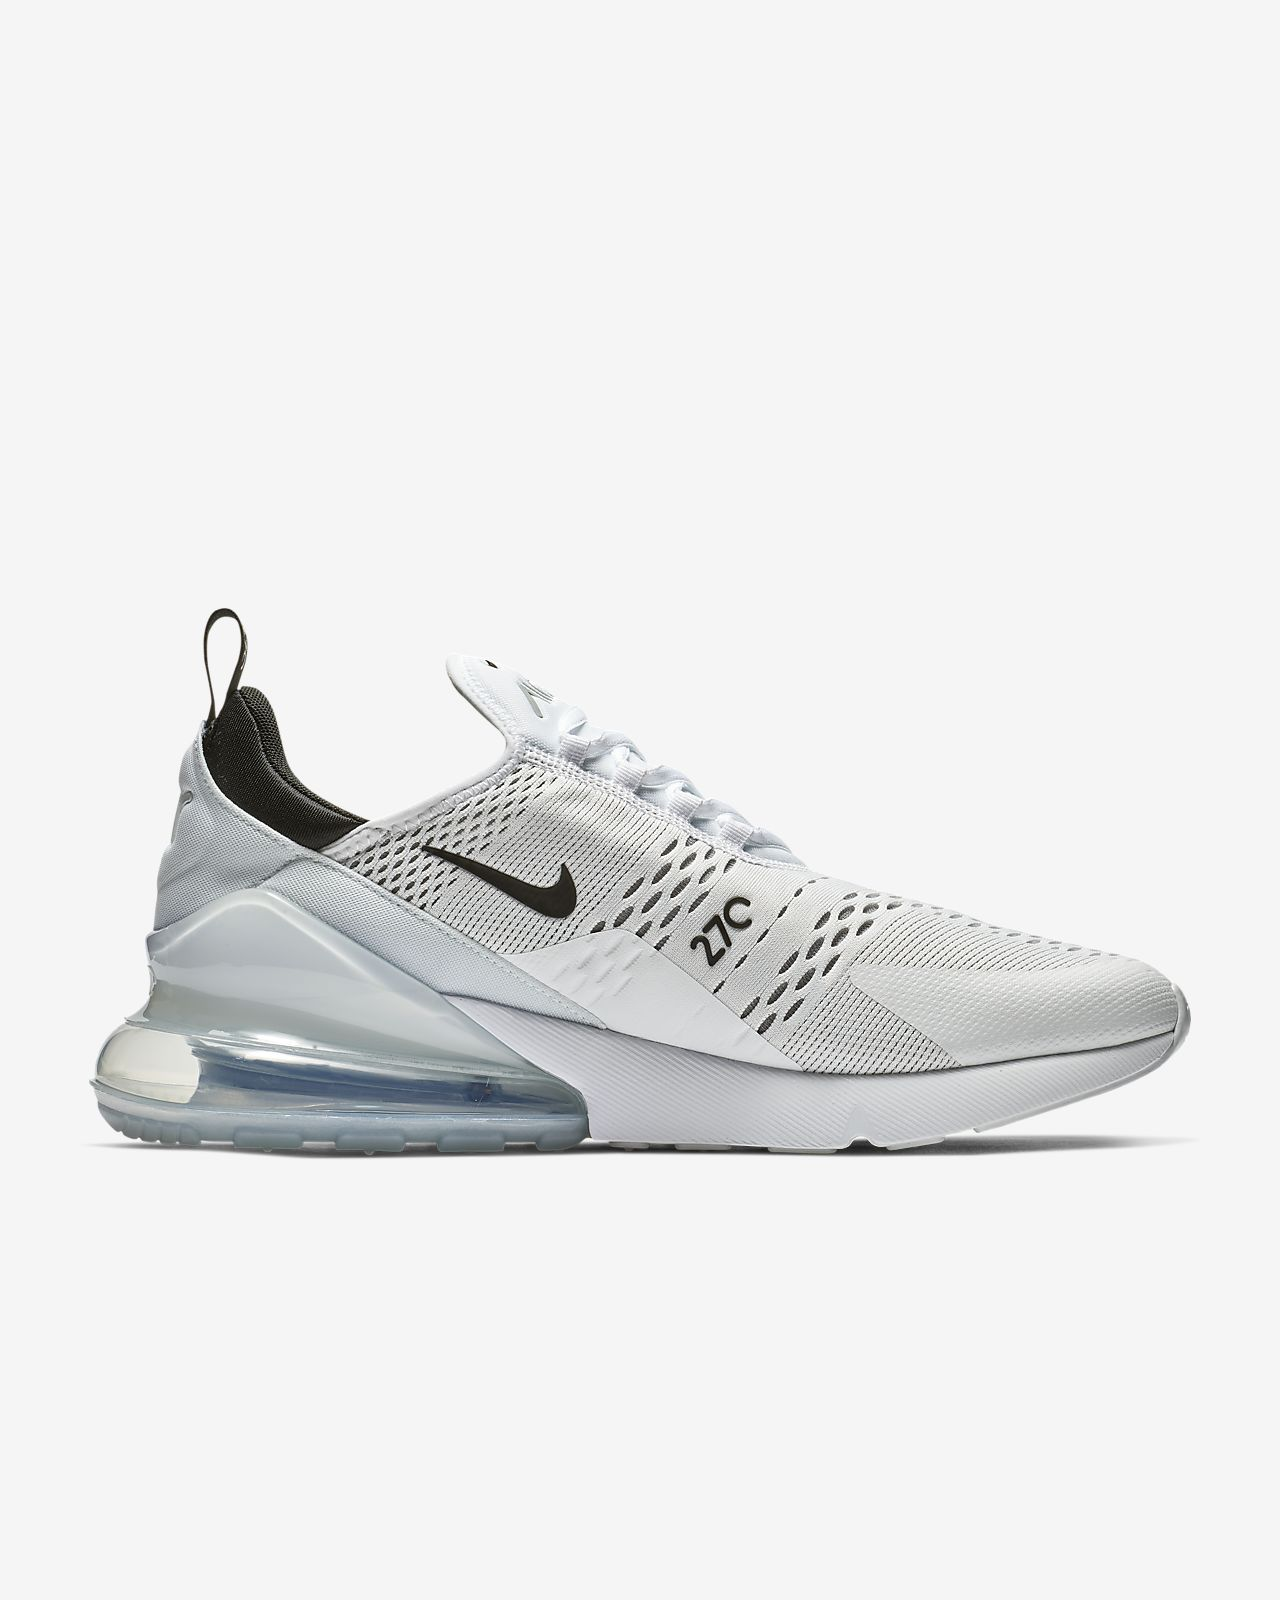 sports shoes a9fb6 93772 Chaussure Nike Air Max 270 pour Homme. Nike.com FR